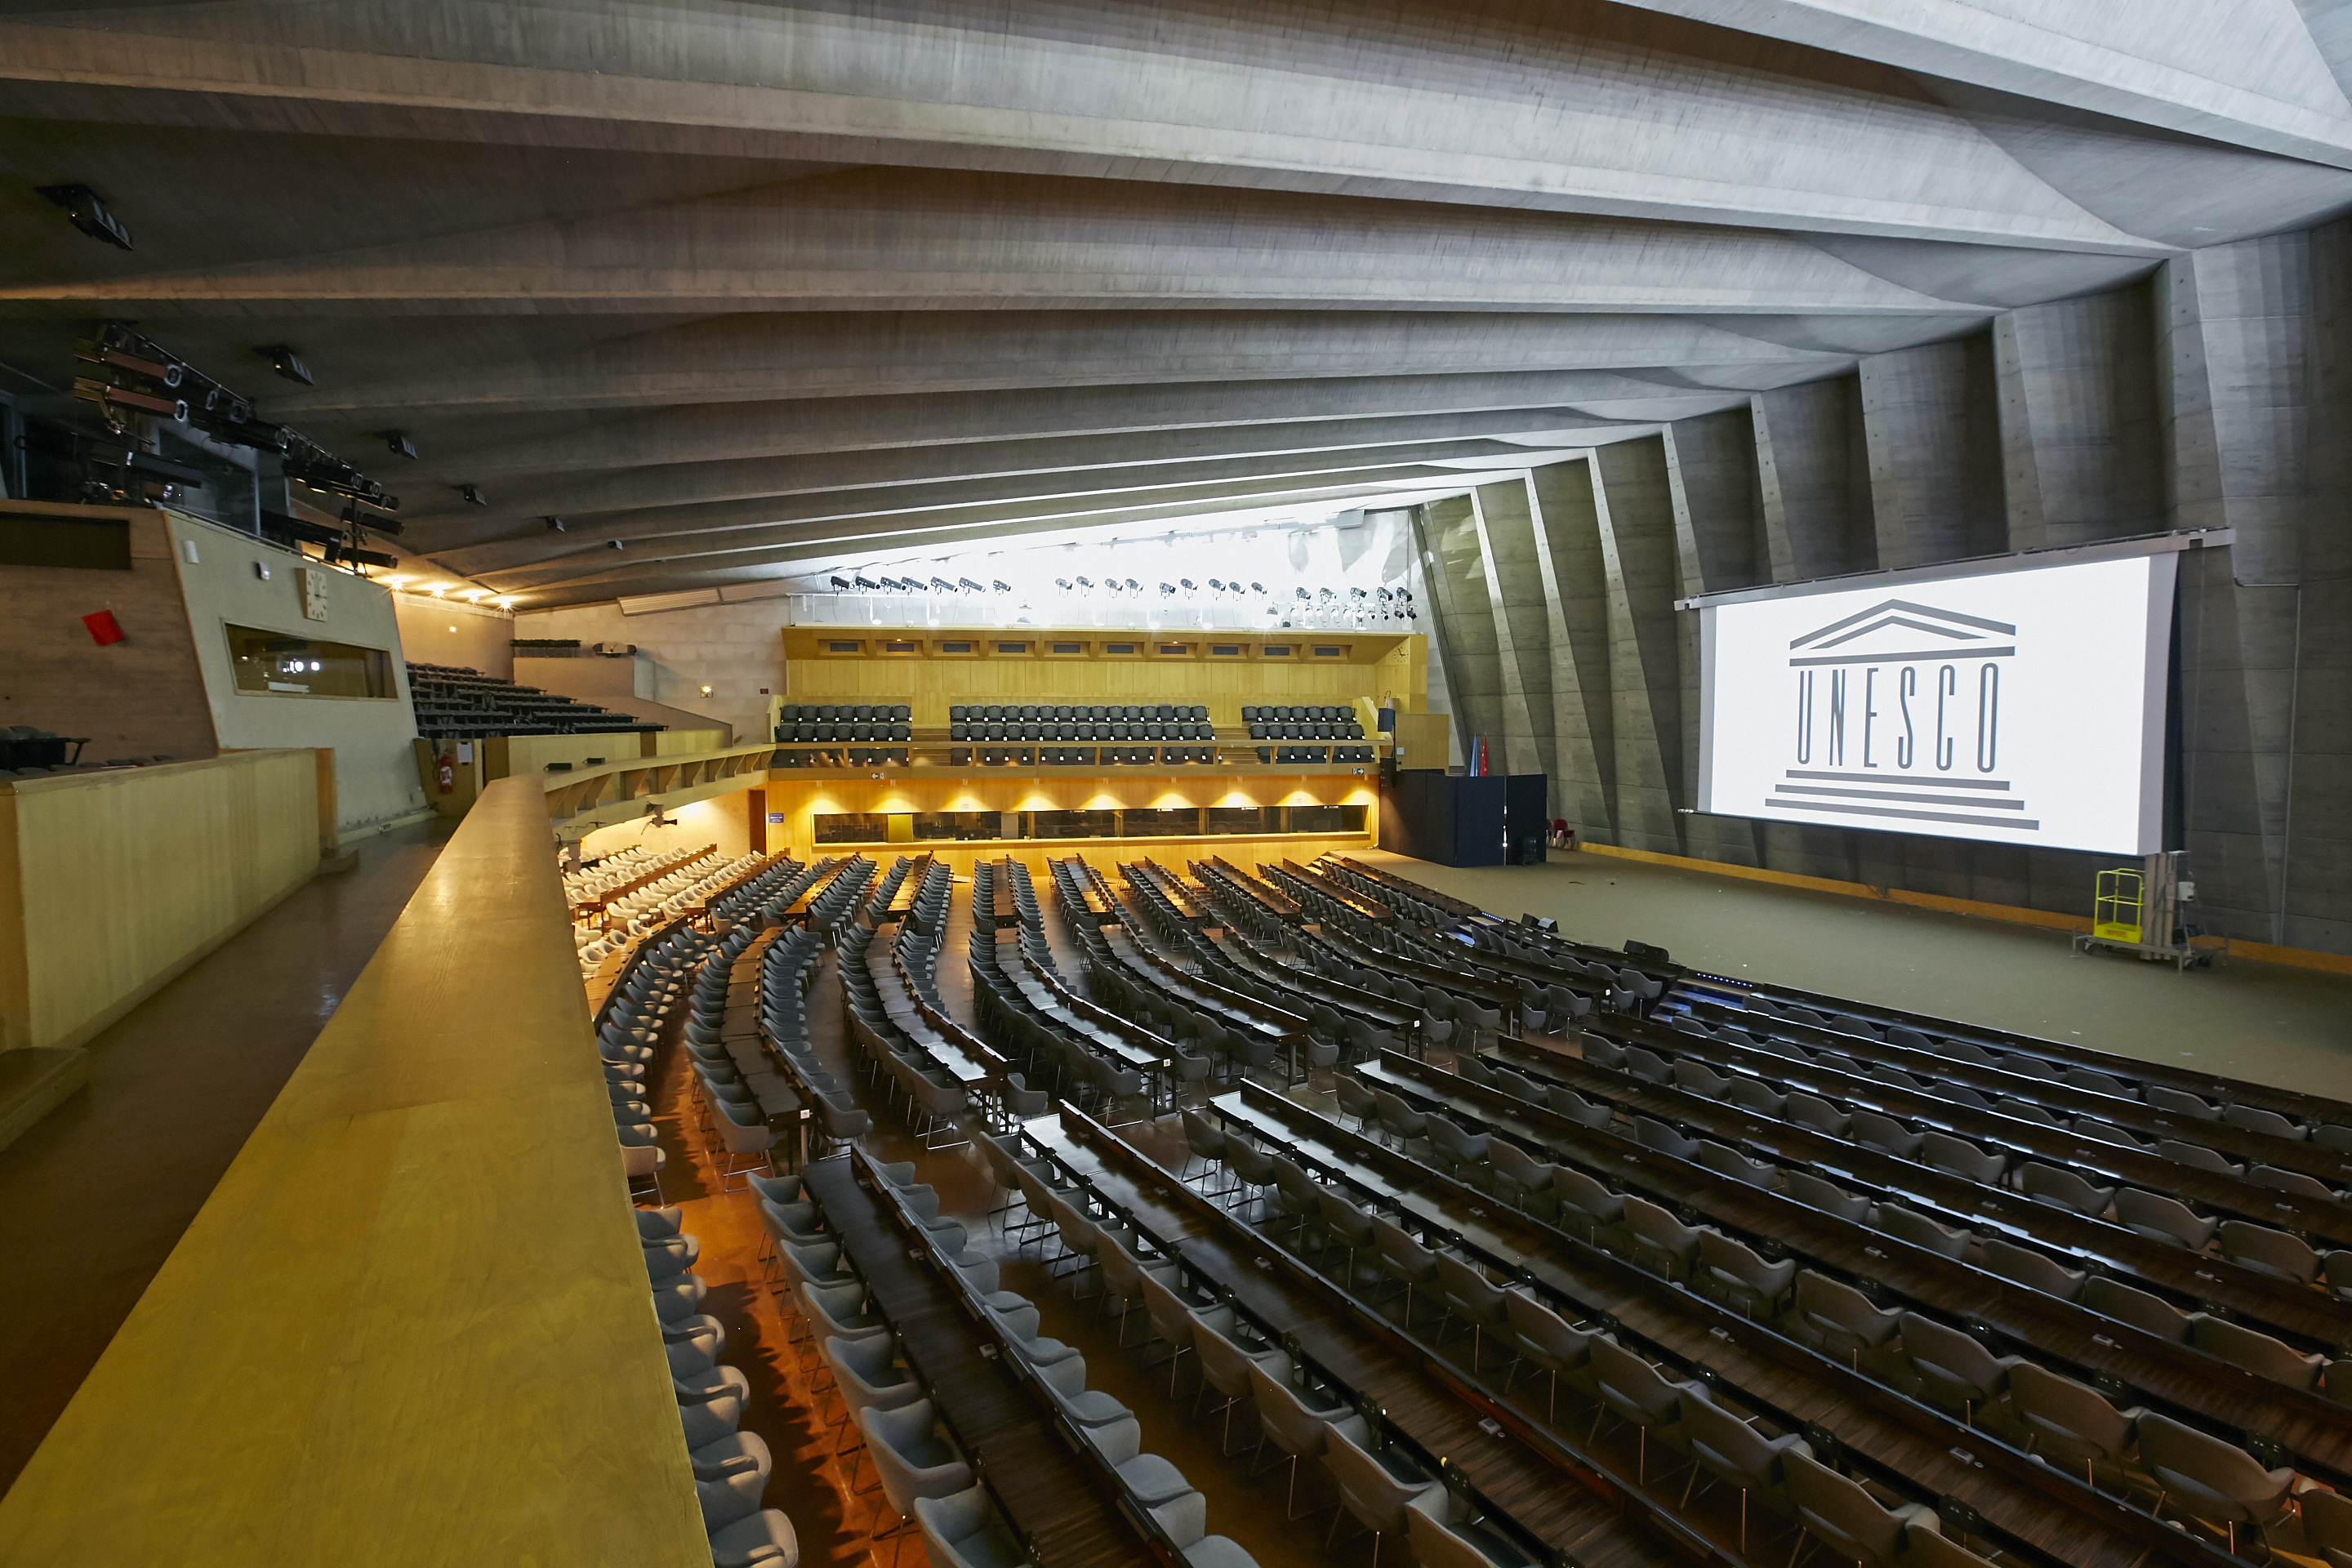 Panasonic installed an integrated AV solution at Room 1, the largest conference room of approx. 1,000 seats, of UNESCO Headquarters (Photo: Business Wire)